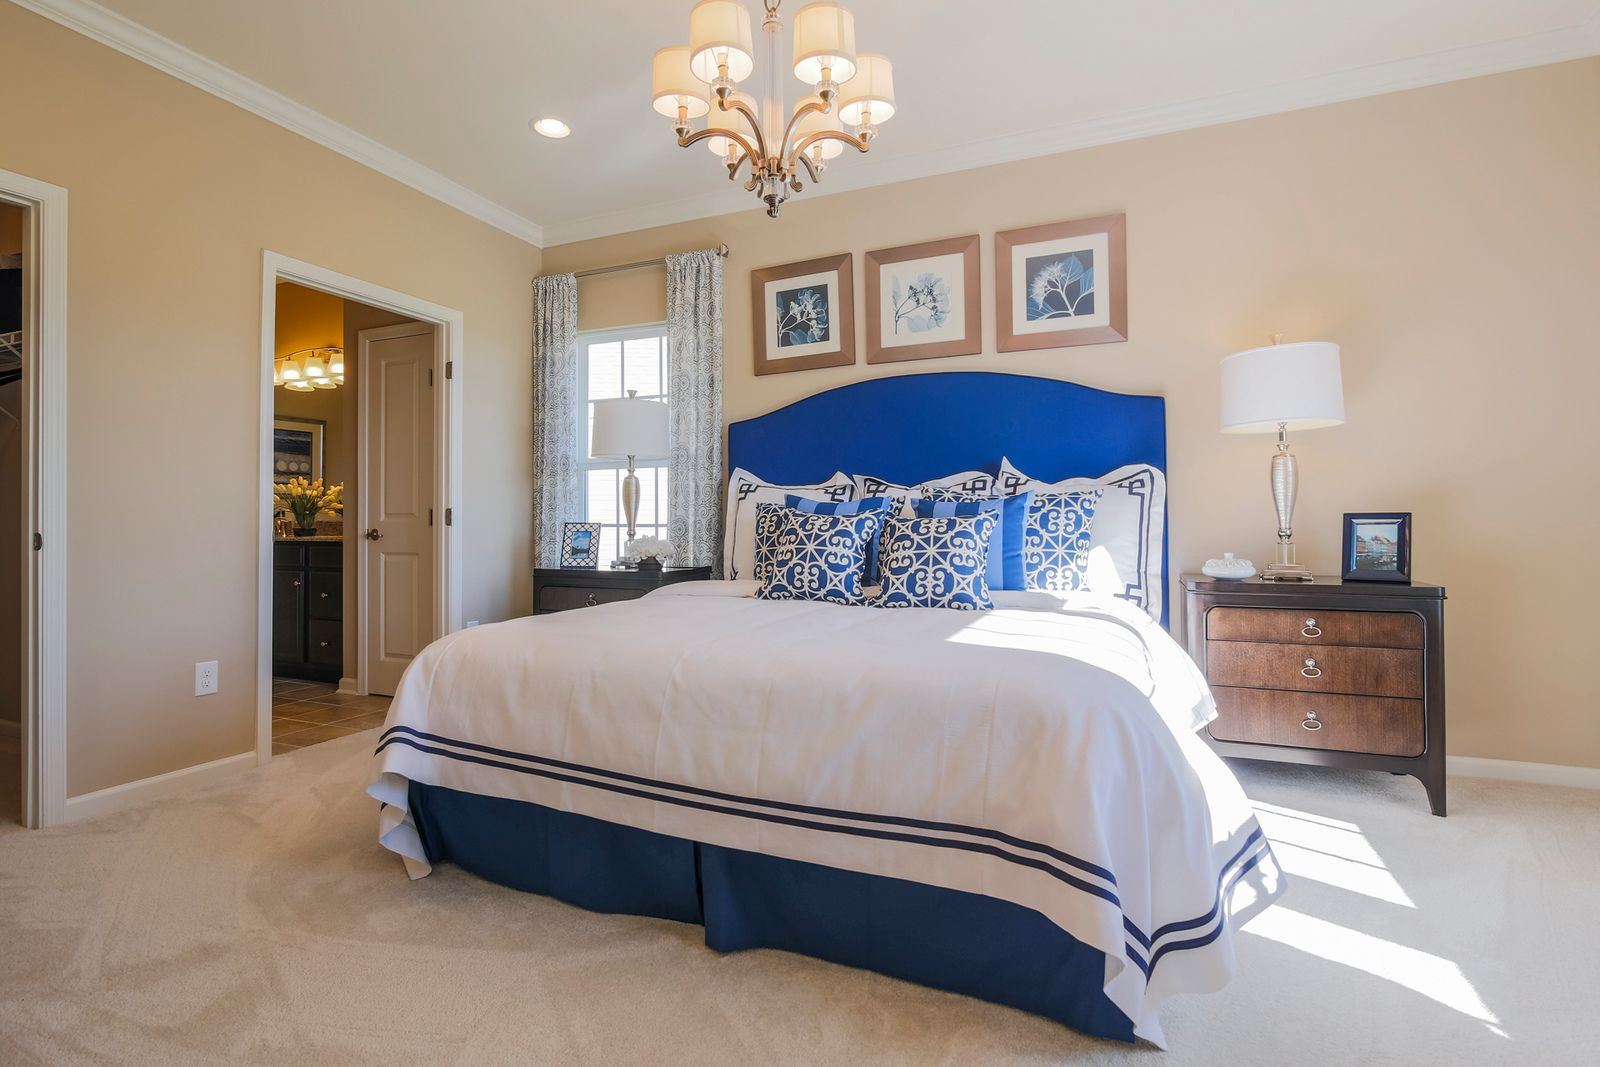 Bedroom featured in the Pisa Torre - Low Maintenance By Ryan Homes in Canton-Massillon, OH